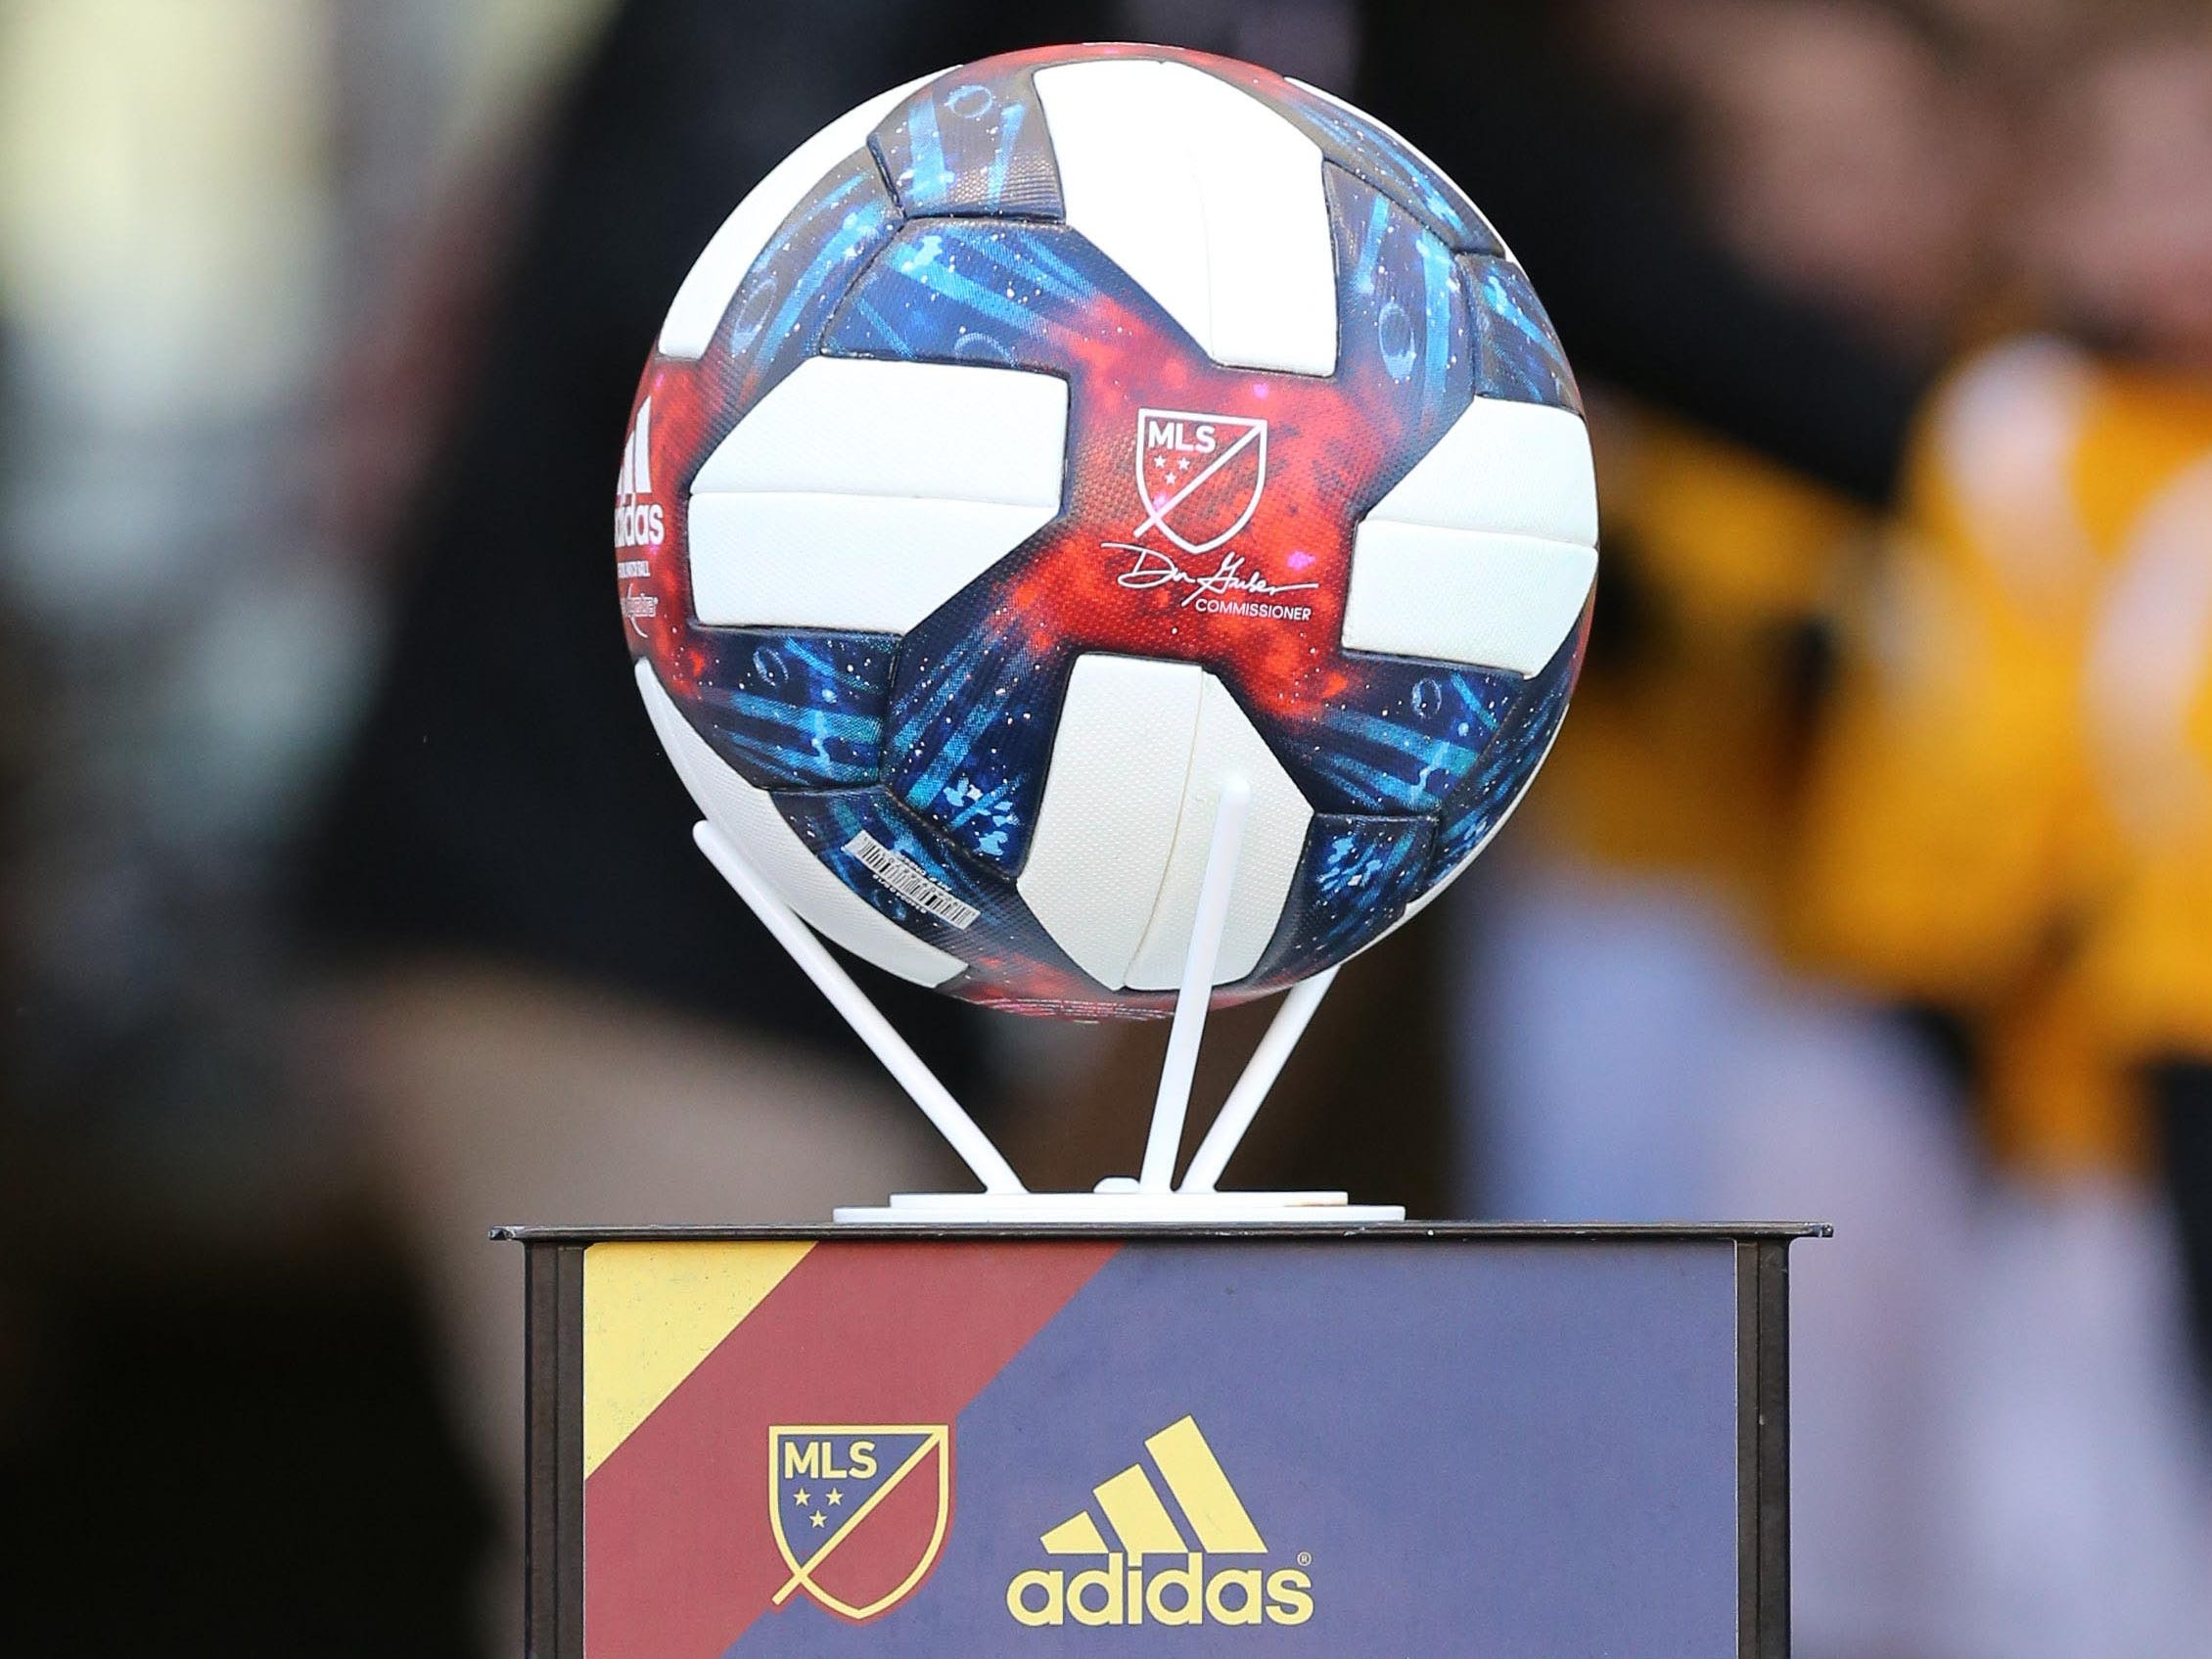 Major League Soccer announces it will expand to at least 30 teams